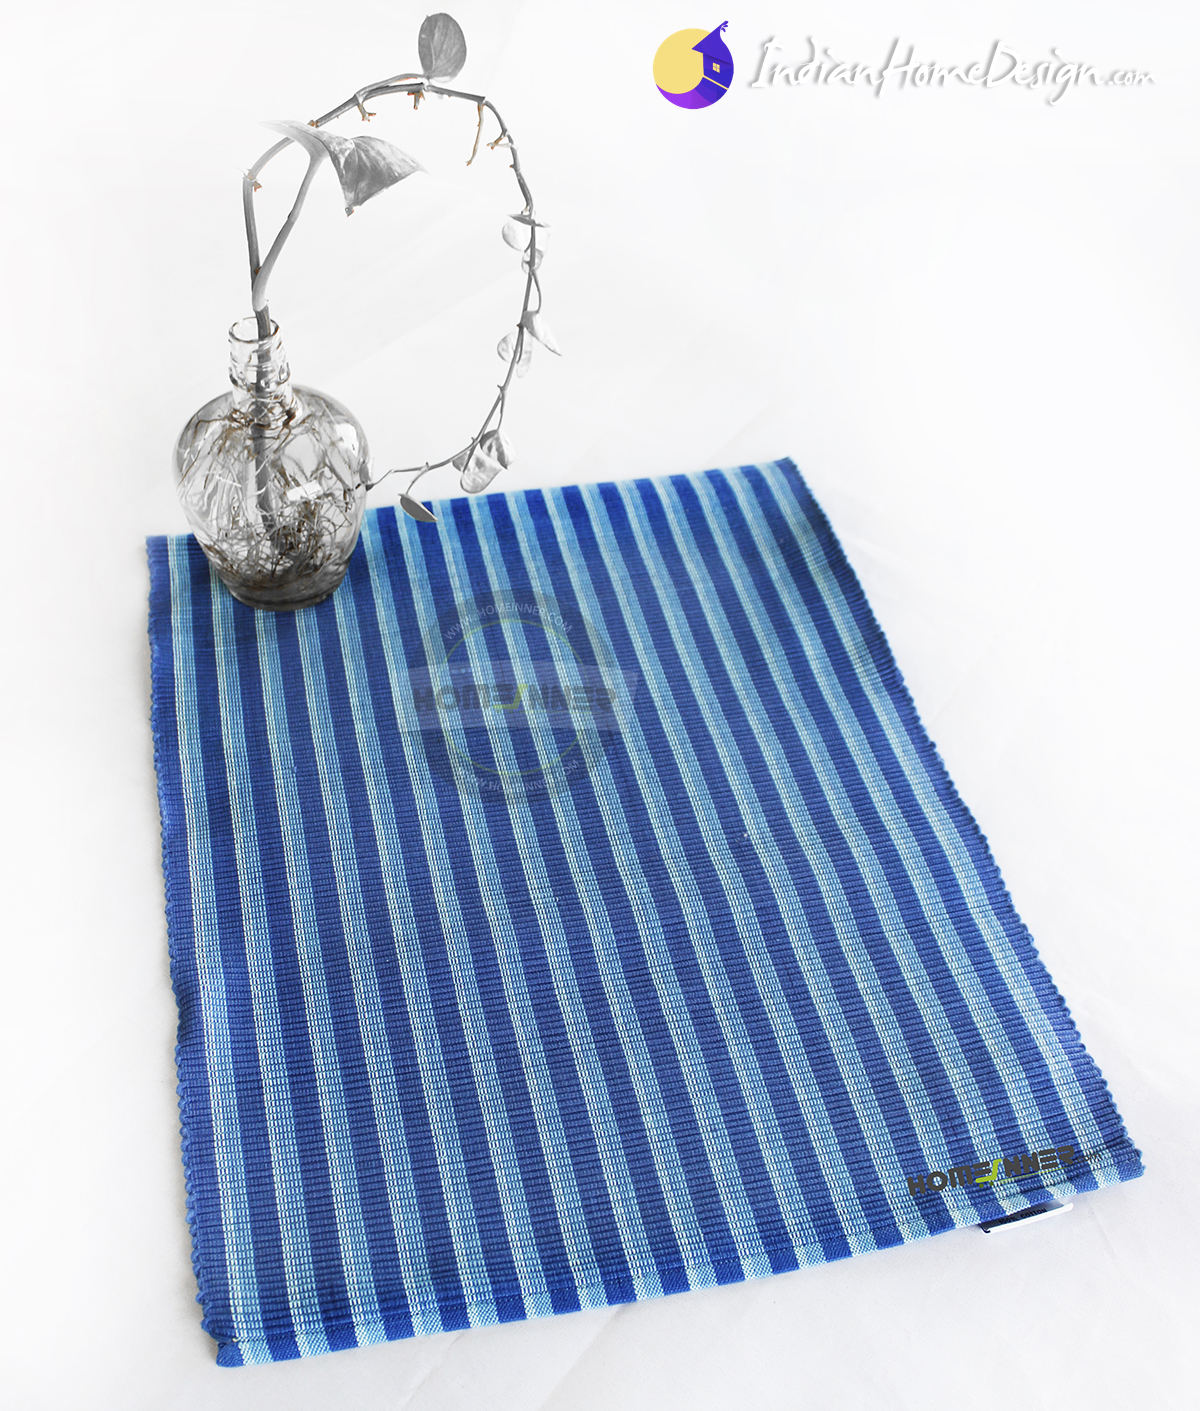 Pure Cotton Handwoven Set Of 5 Blue Striped Placemats 34 * 45 Cm